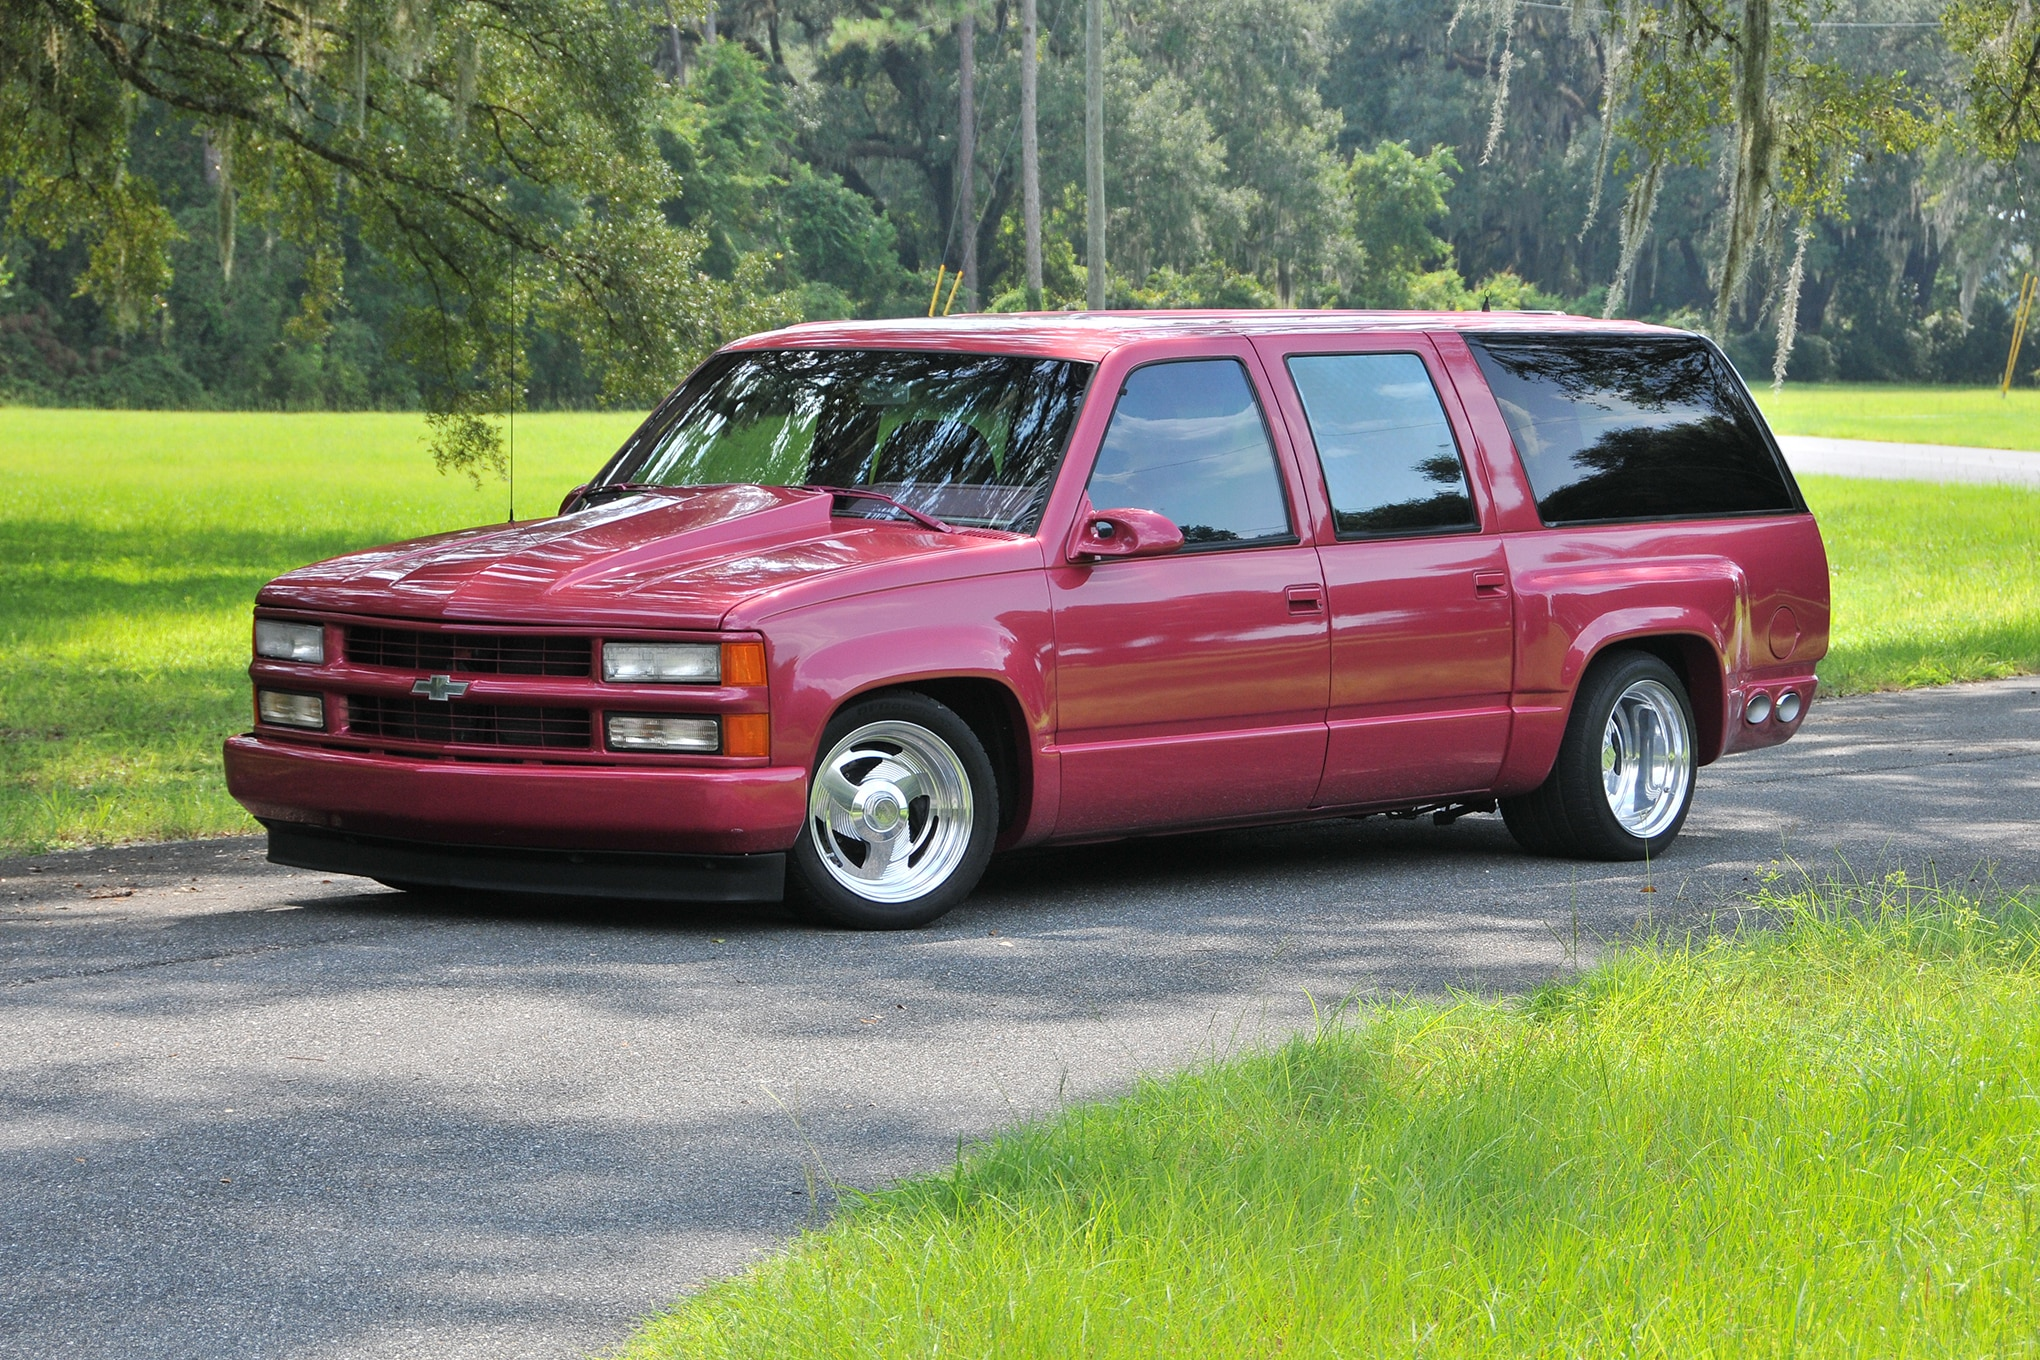 1994 Chevrolet Suburban- The Time Machine